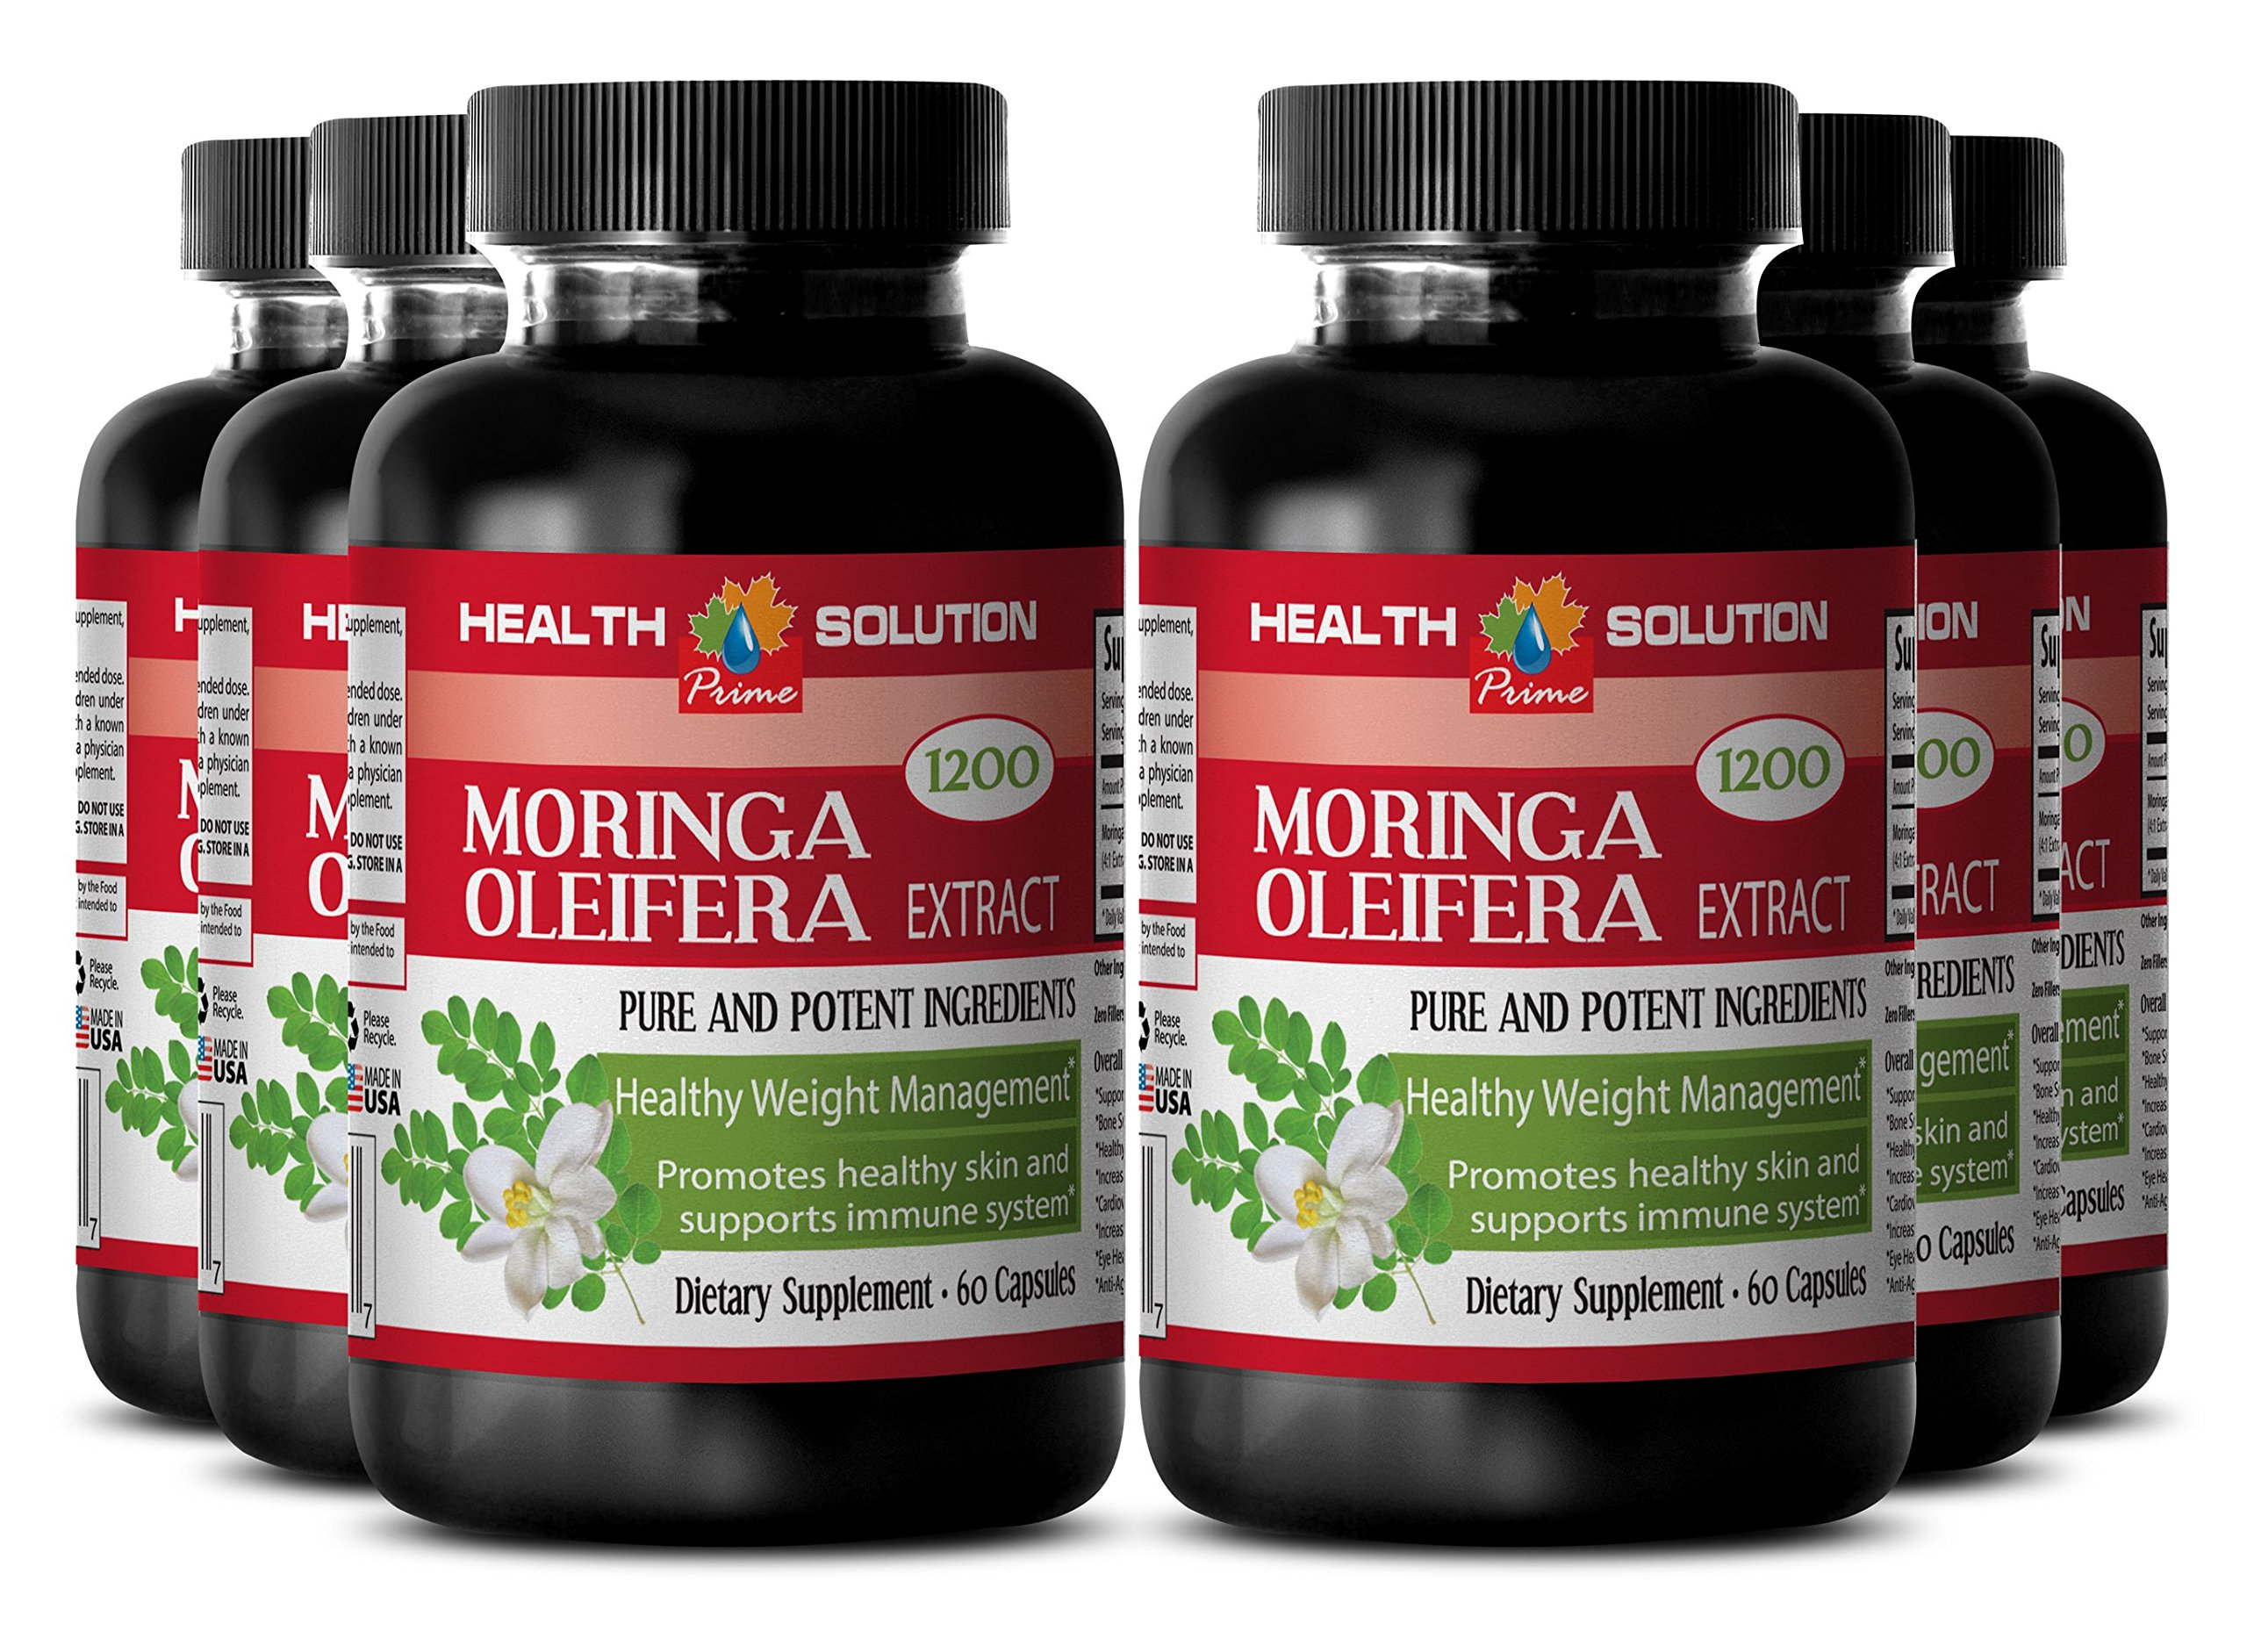 Moringa Organic Powder - MORINGA OLEIFERA EXTRACT 1200 - Pure Skin Clarifying Dietary Supplement 3 Bottles, 180 Capsules by Health Solution Prime (Image #5)